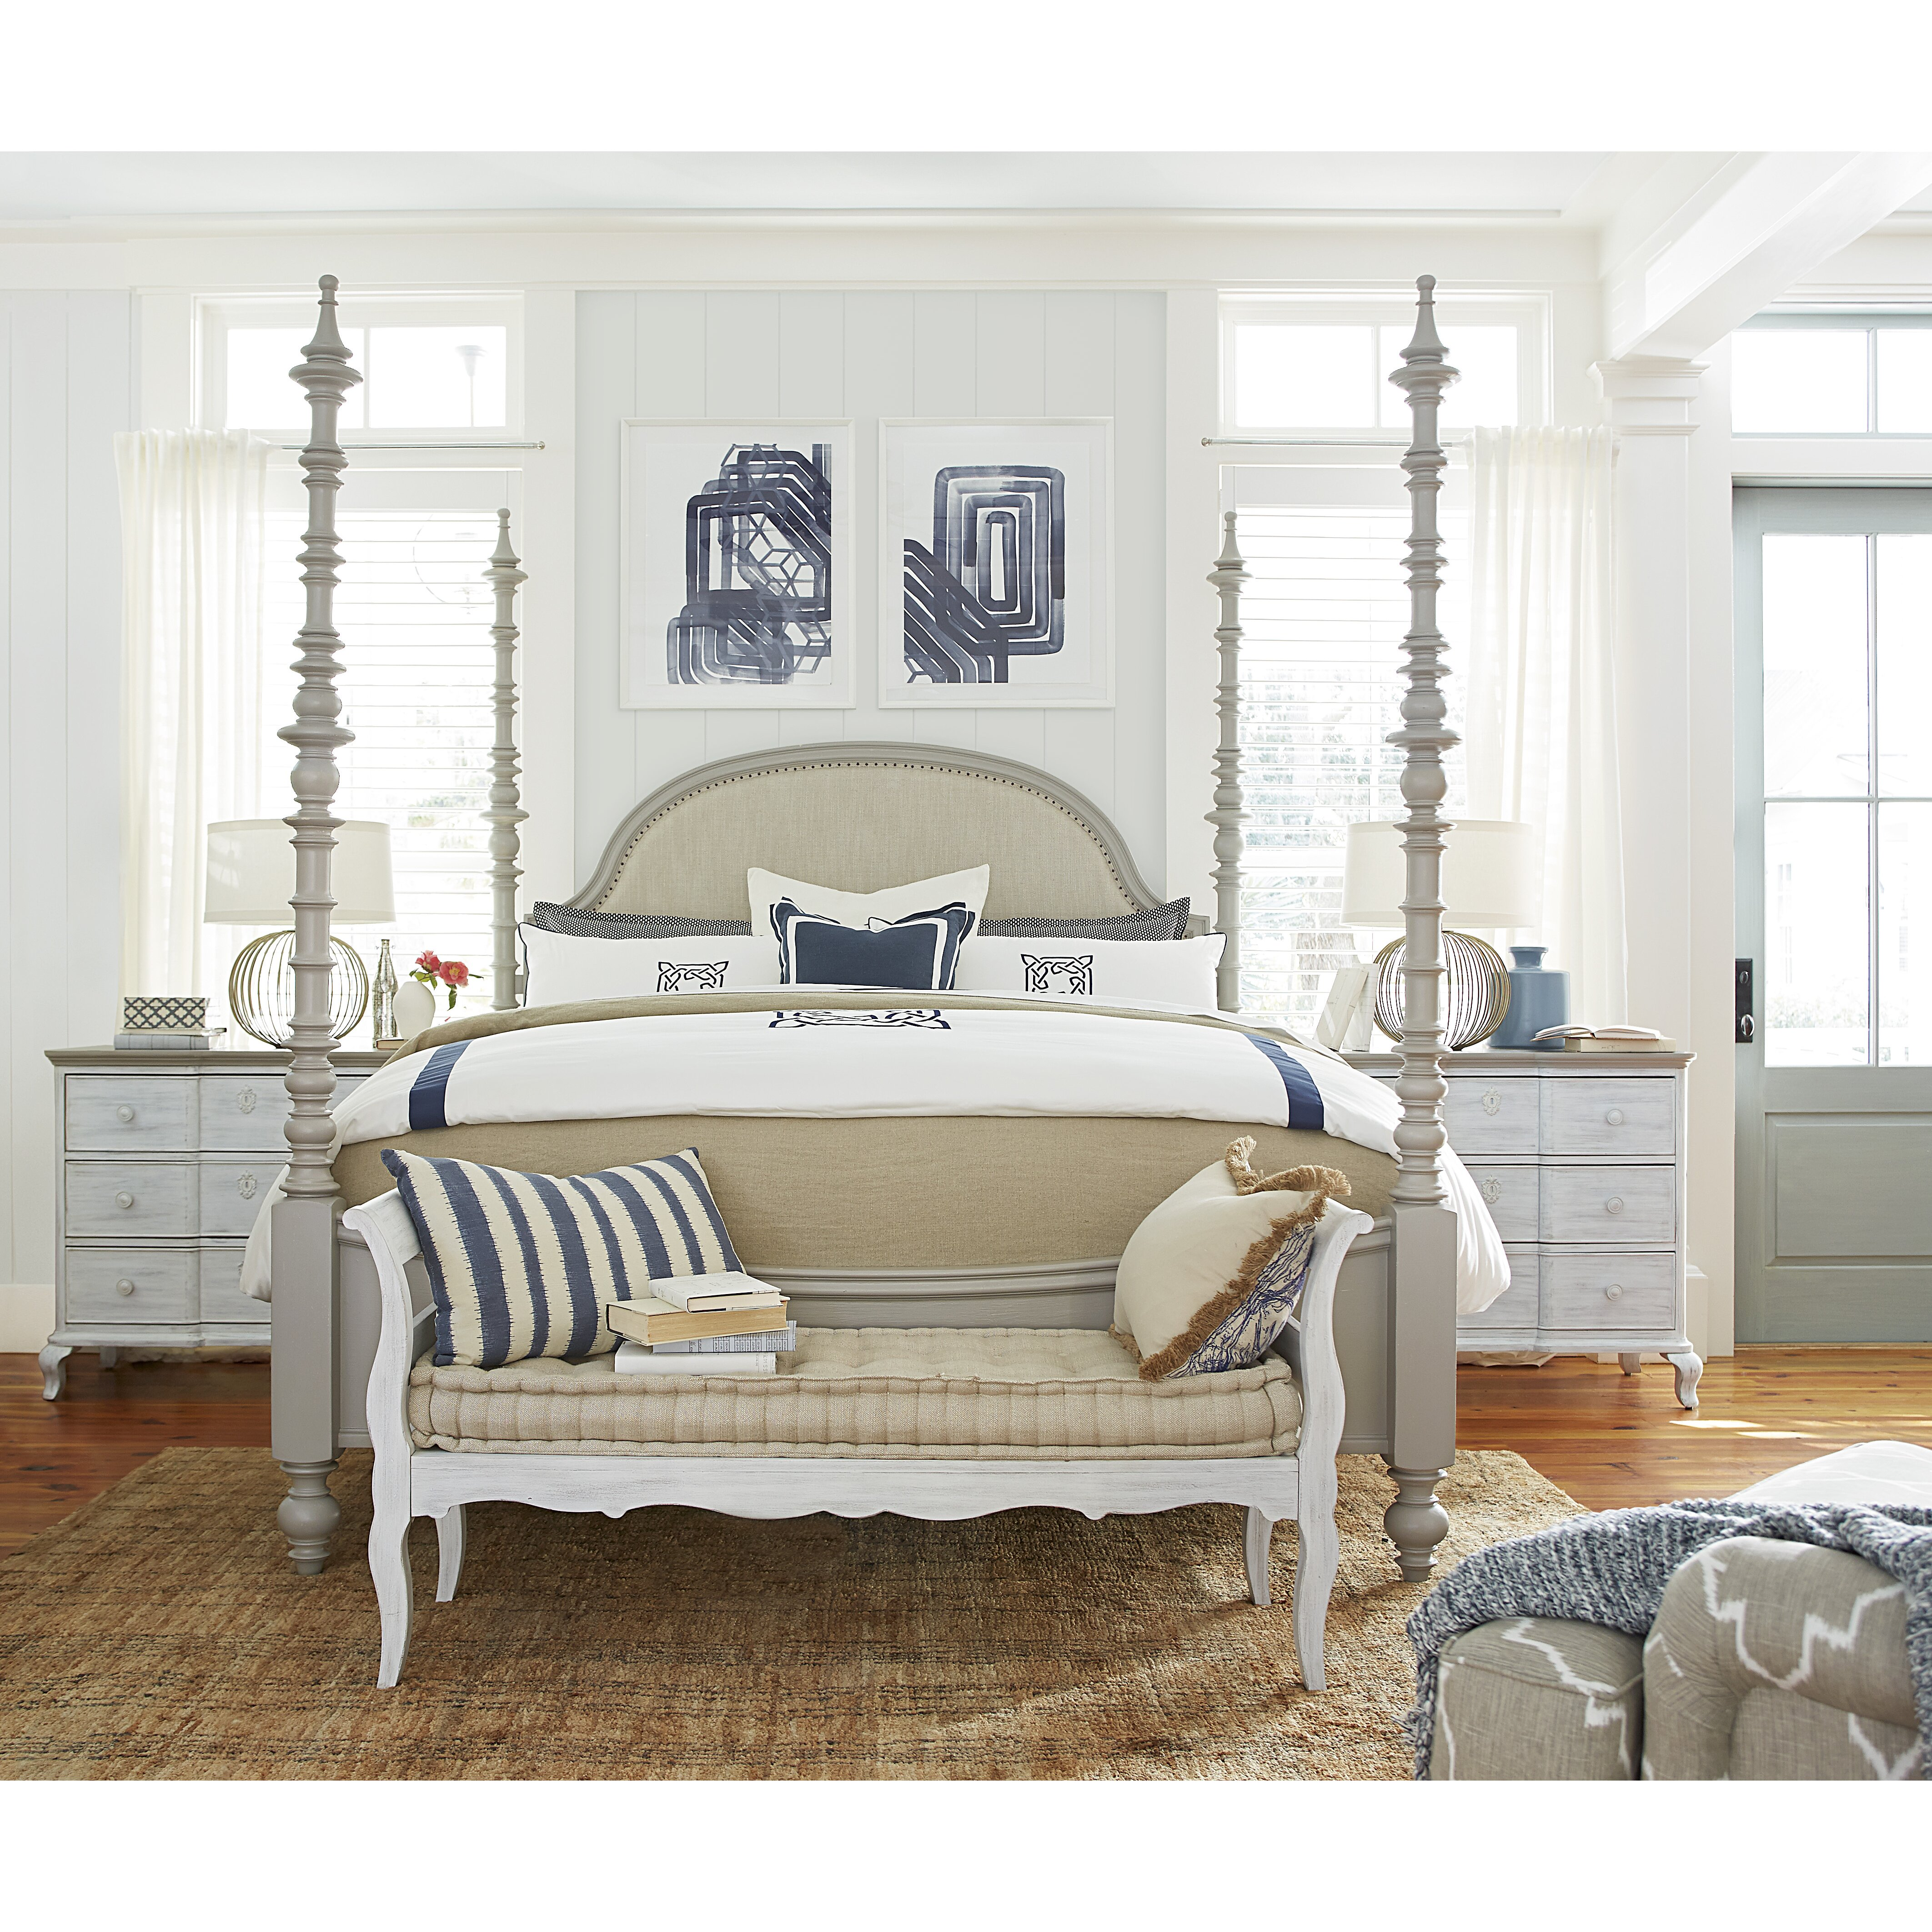 Paula Deen Bedroom Furniture Collection Steel Magnolia Paula Deen Home Dogwood 3 Drawer Nightstand Reviews Wayfair